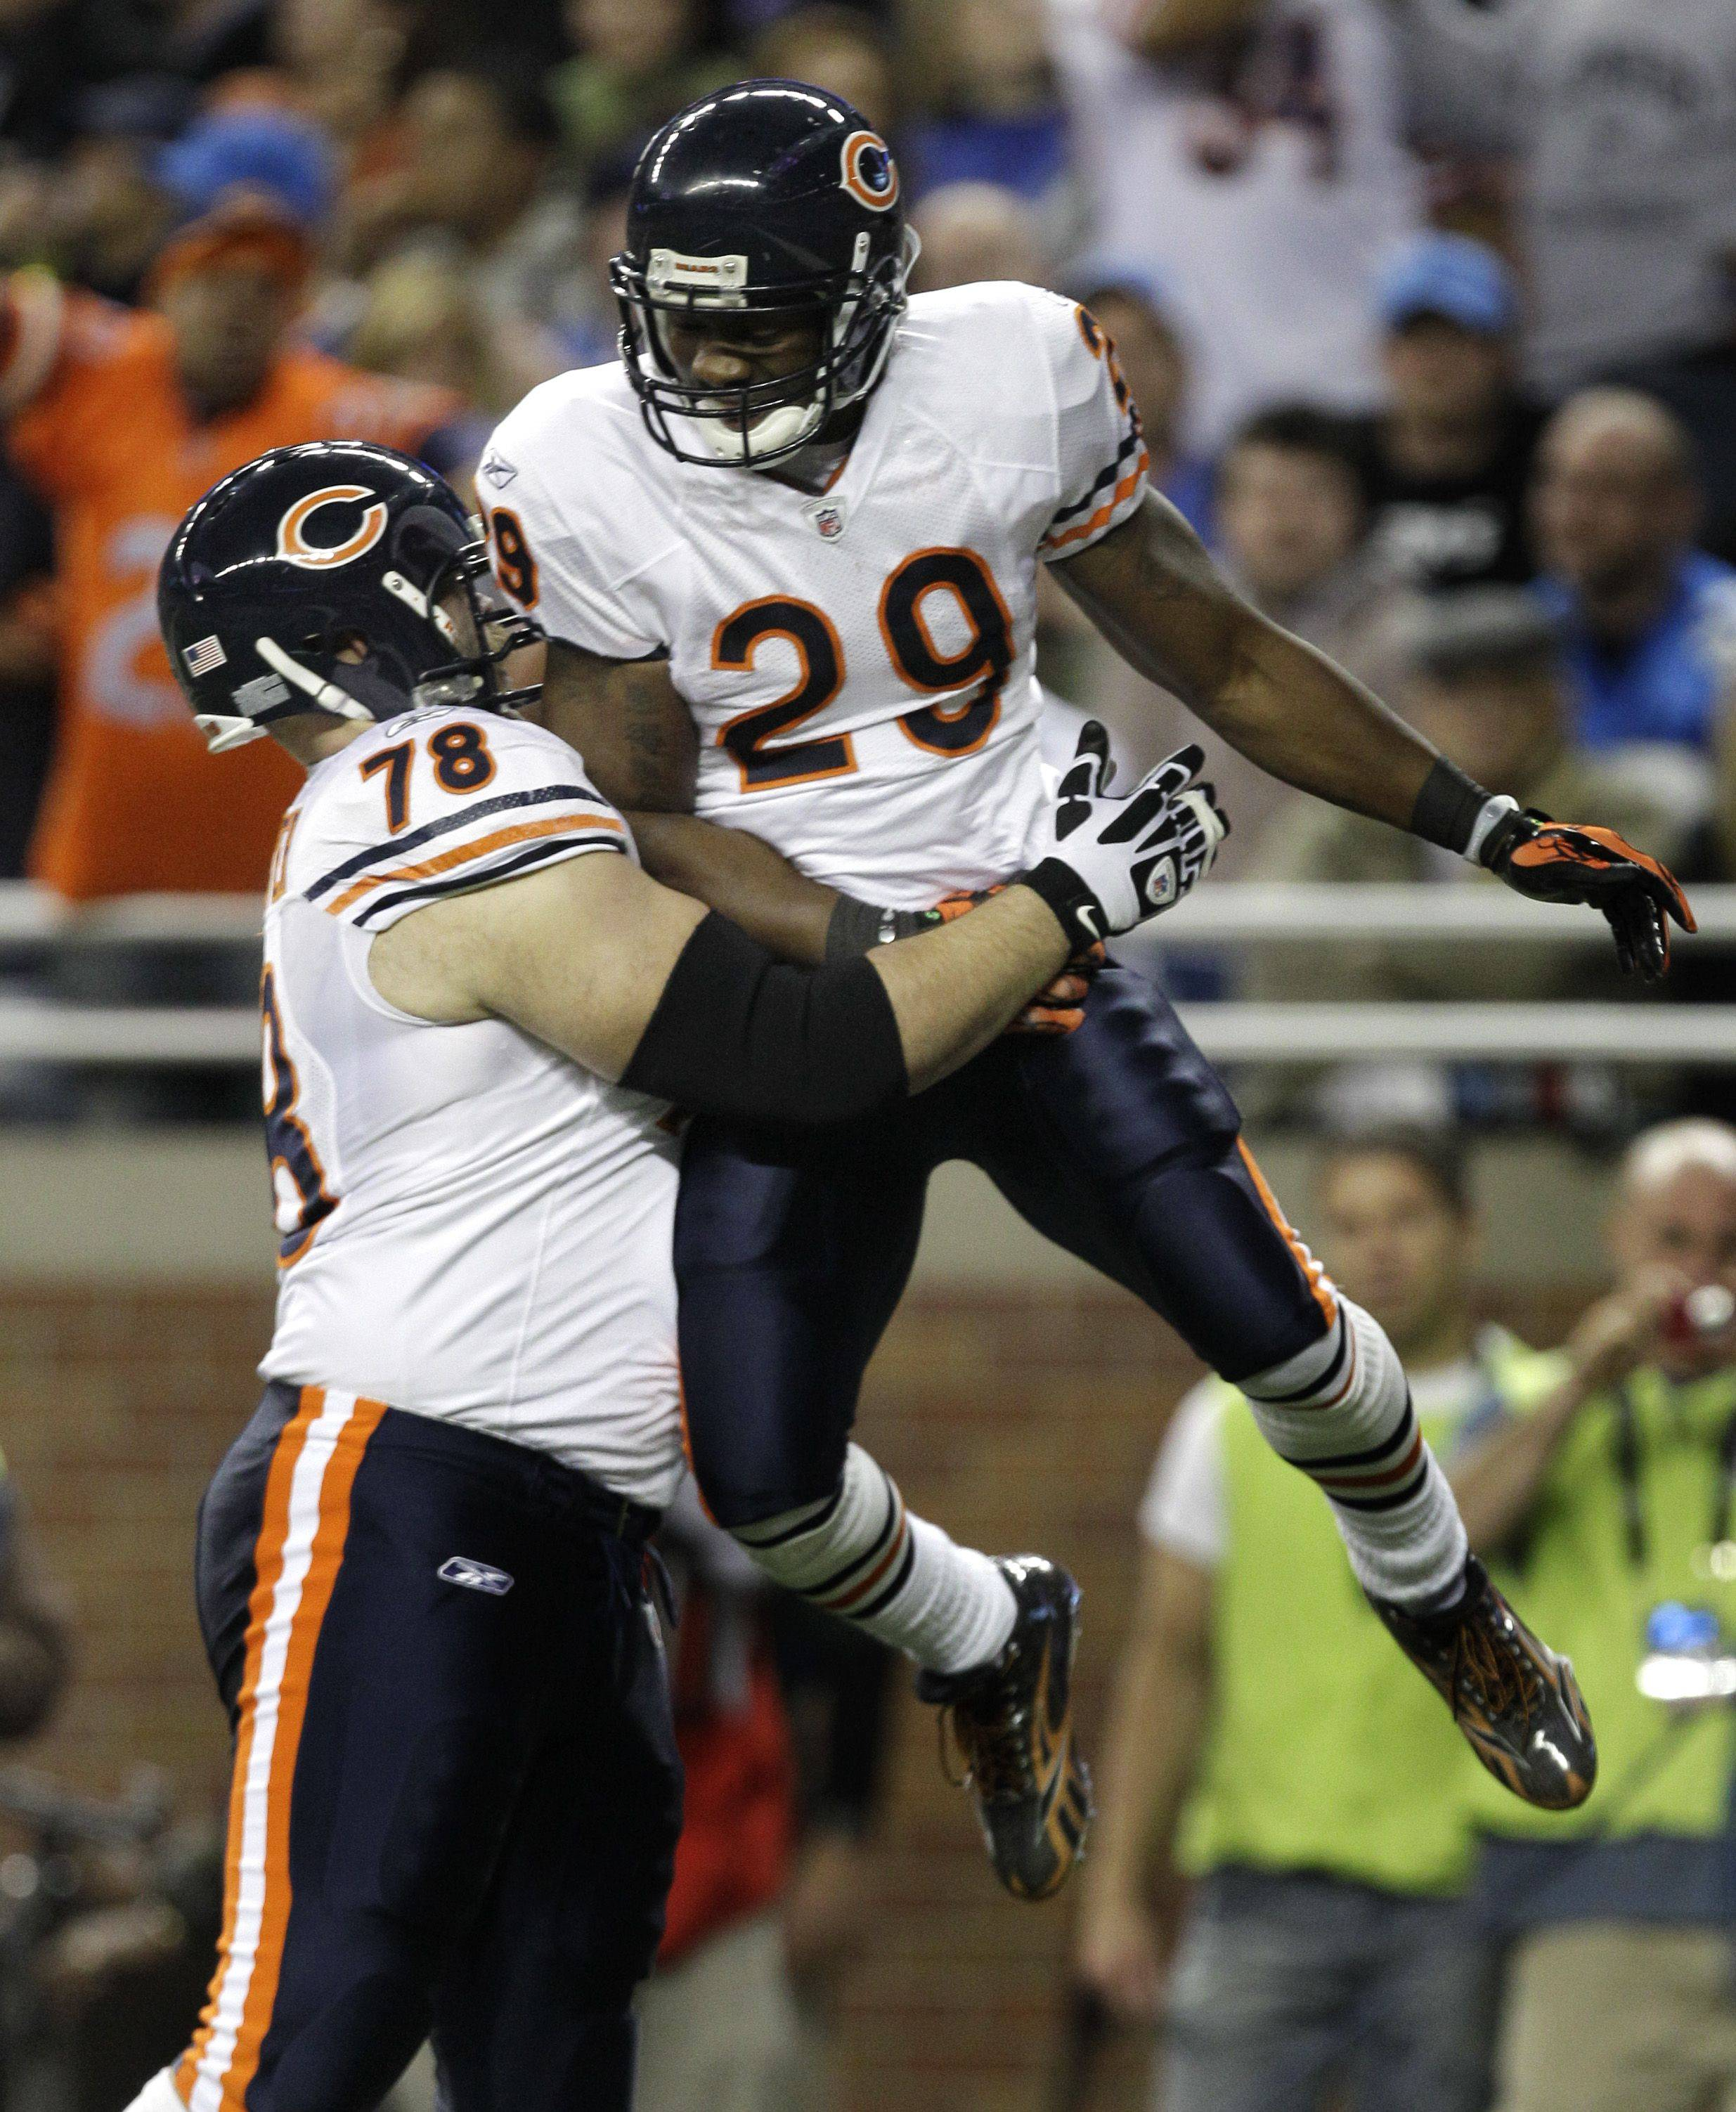 Chicago Bears running back Chester Taylor celebrates his 1-yard touchdown run with offensive tackle Kevin Shaffer in the first quarter.